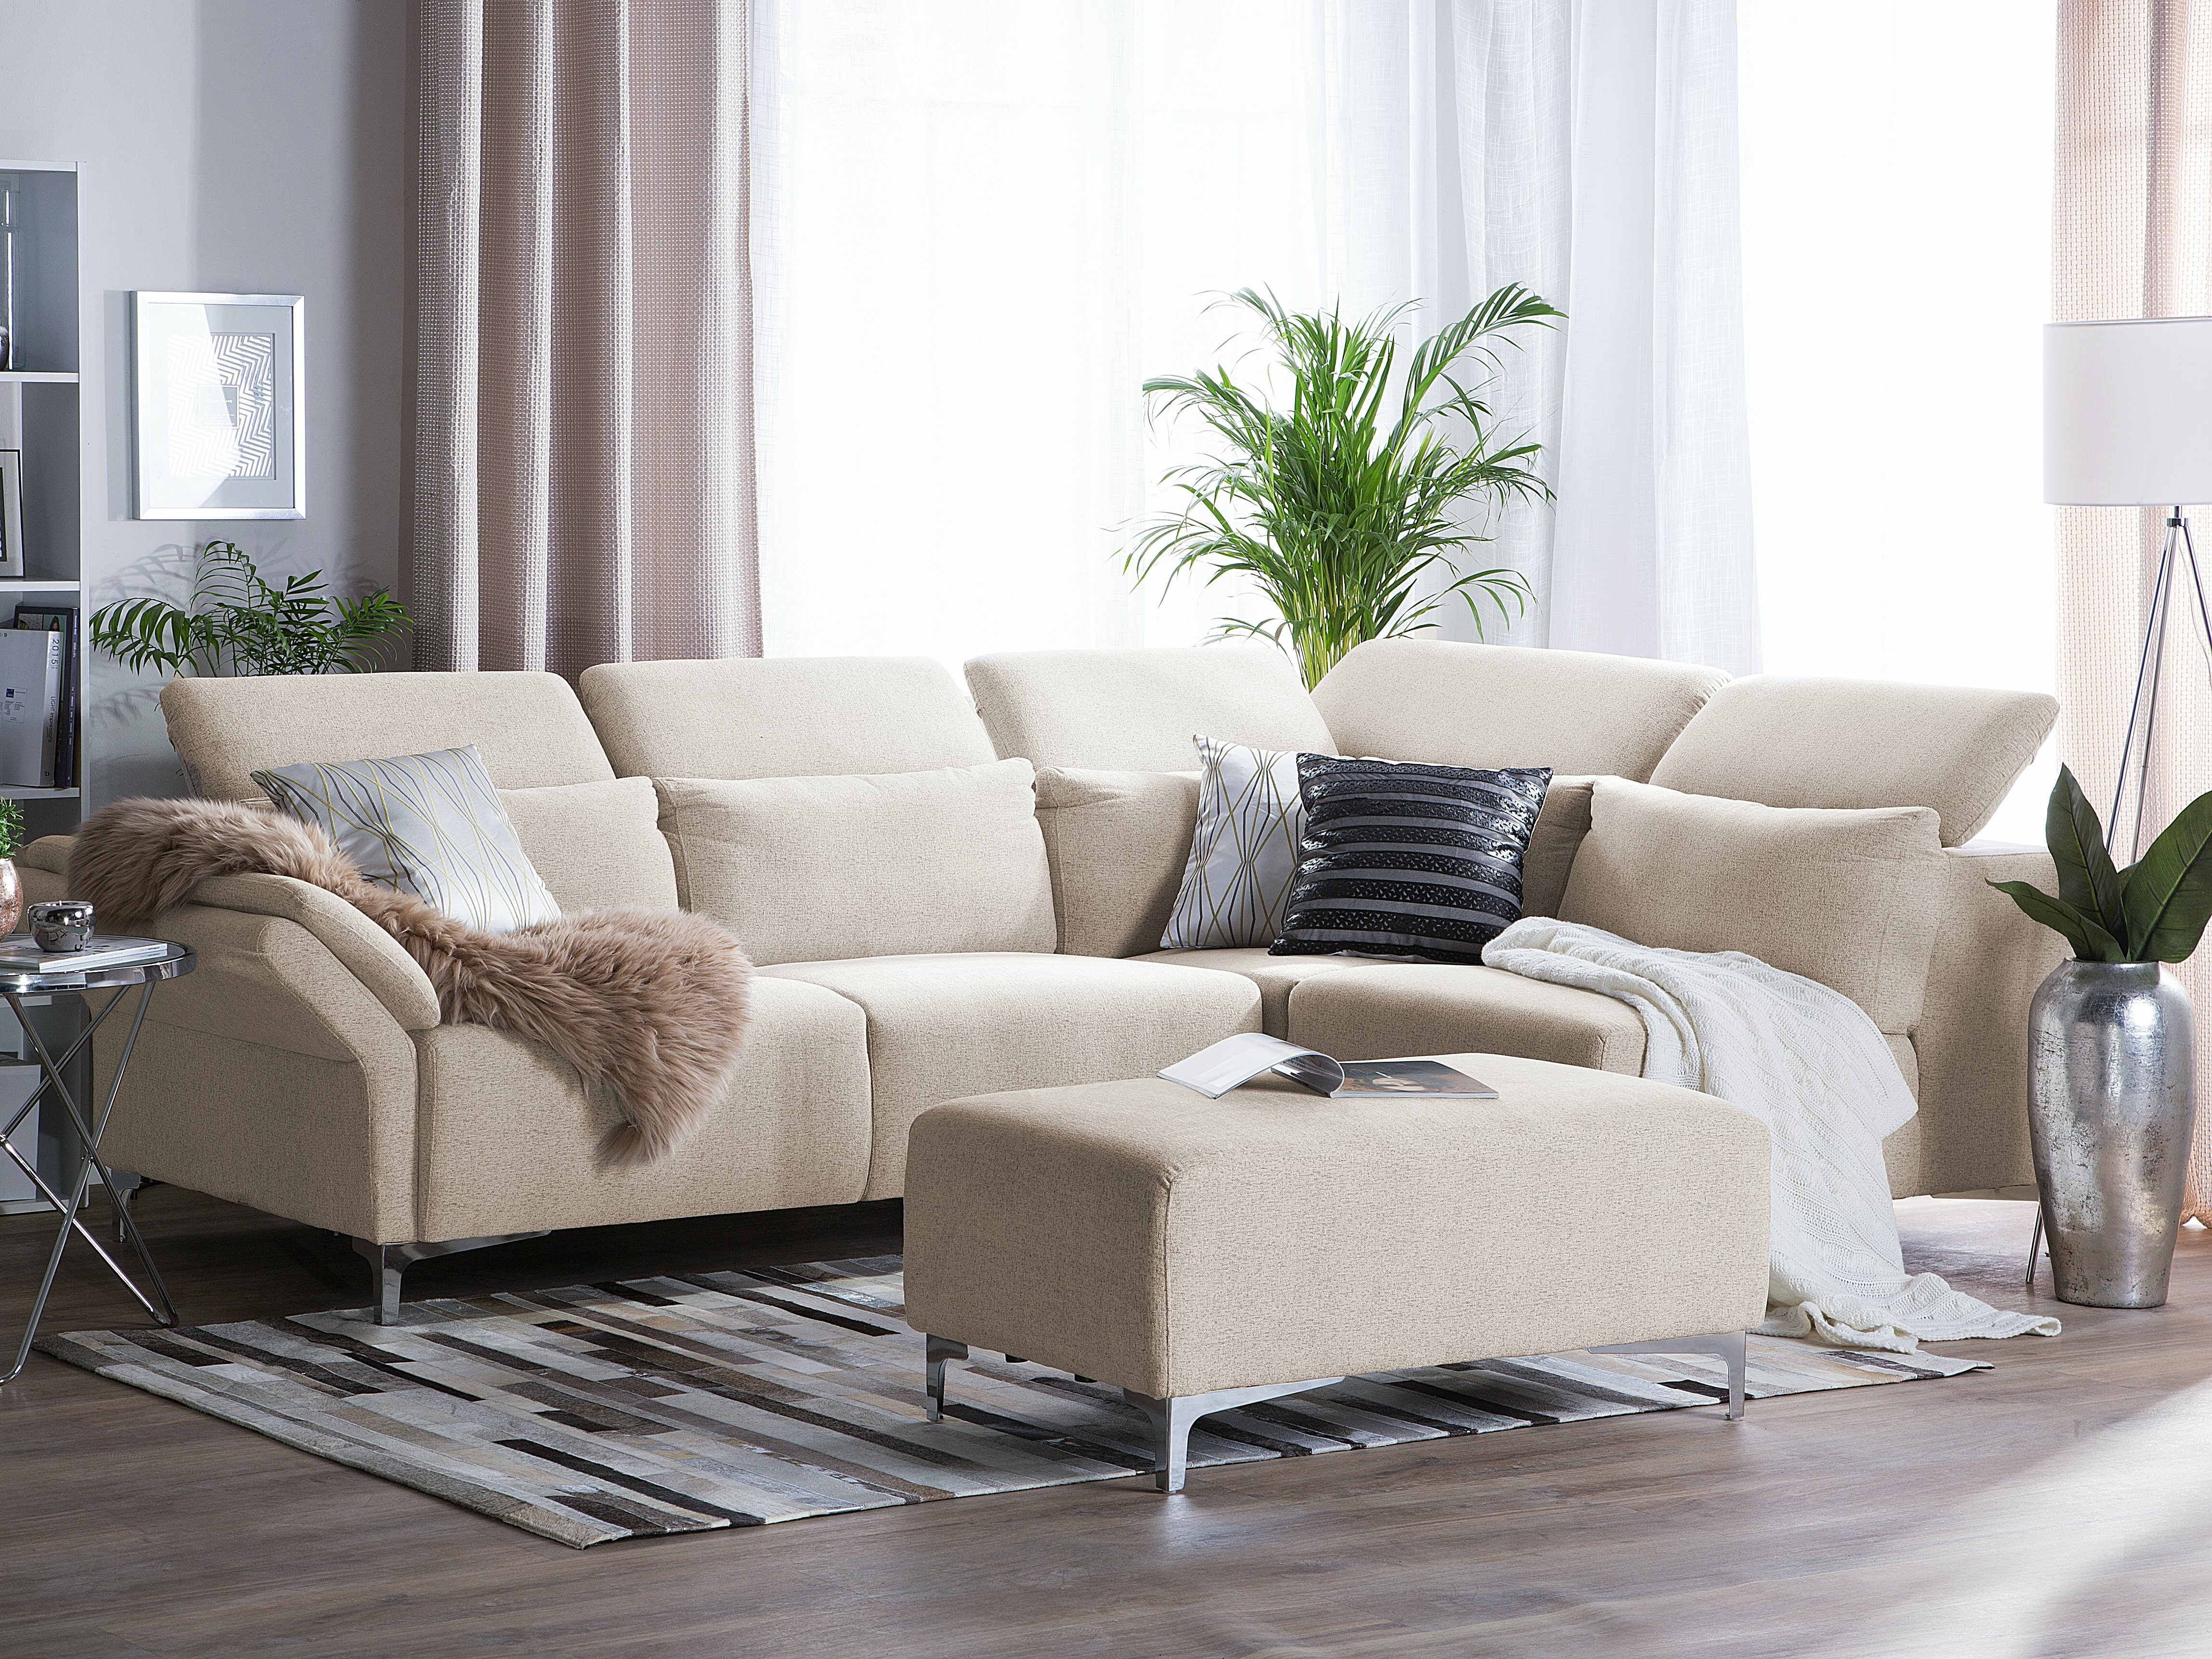 Astounding Robitaille Right Hand Facing Modular Sectional With Ottoman Ibusinesslaw Wood Chair Design Ideas Ibusinesslaworg